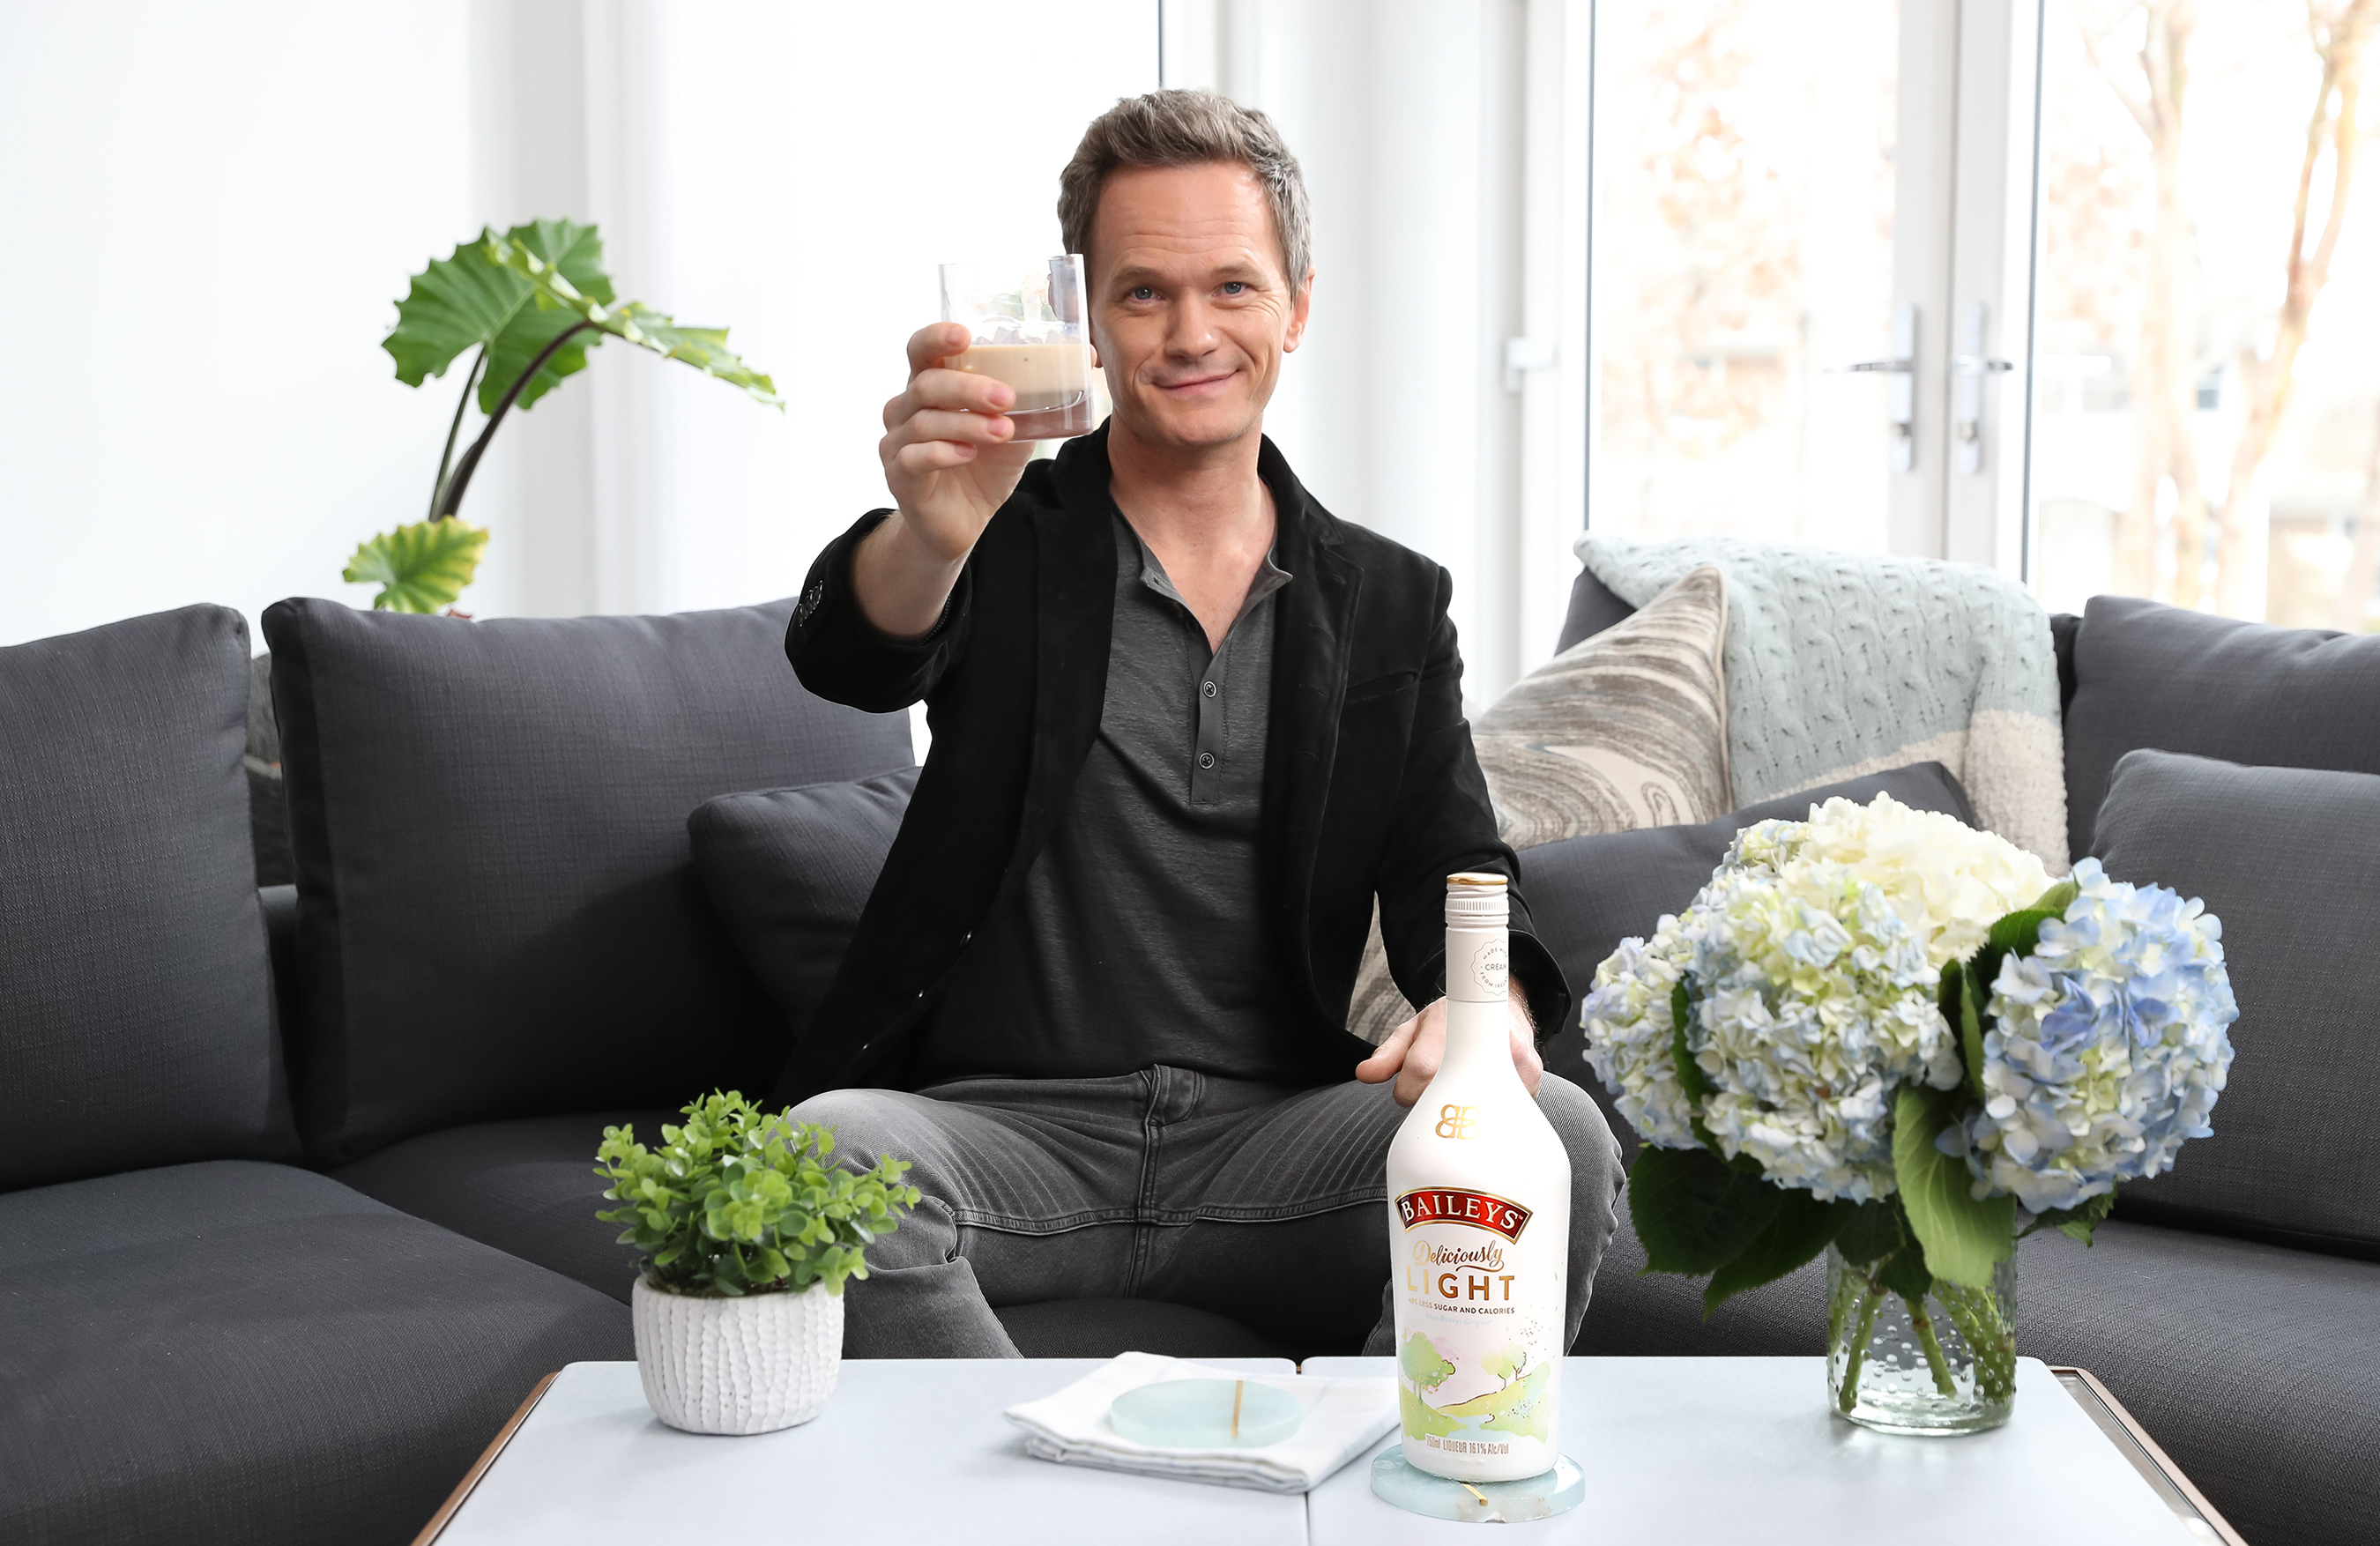 Neil Patrick Harris Treats Himself to a Light Break with the New Baileys Deliciously Light